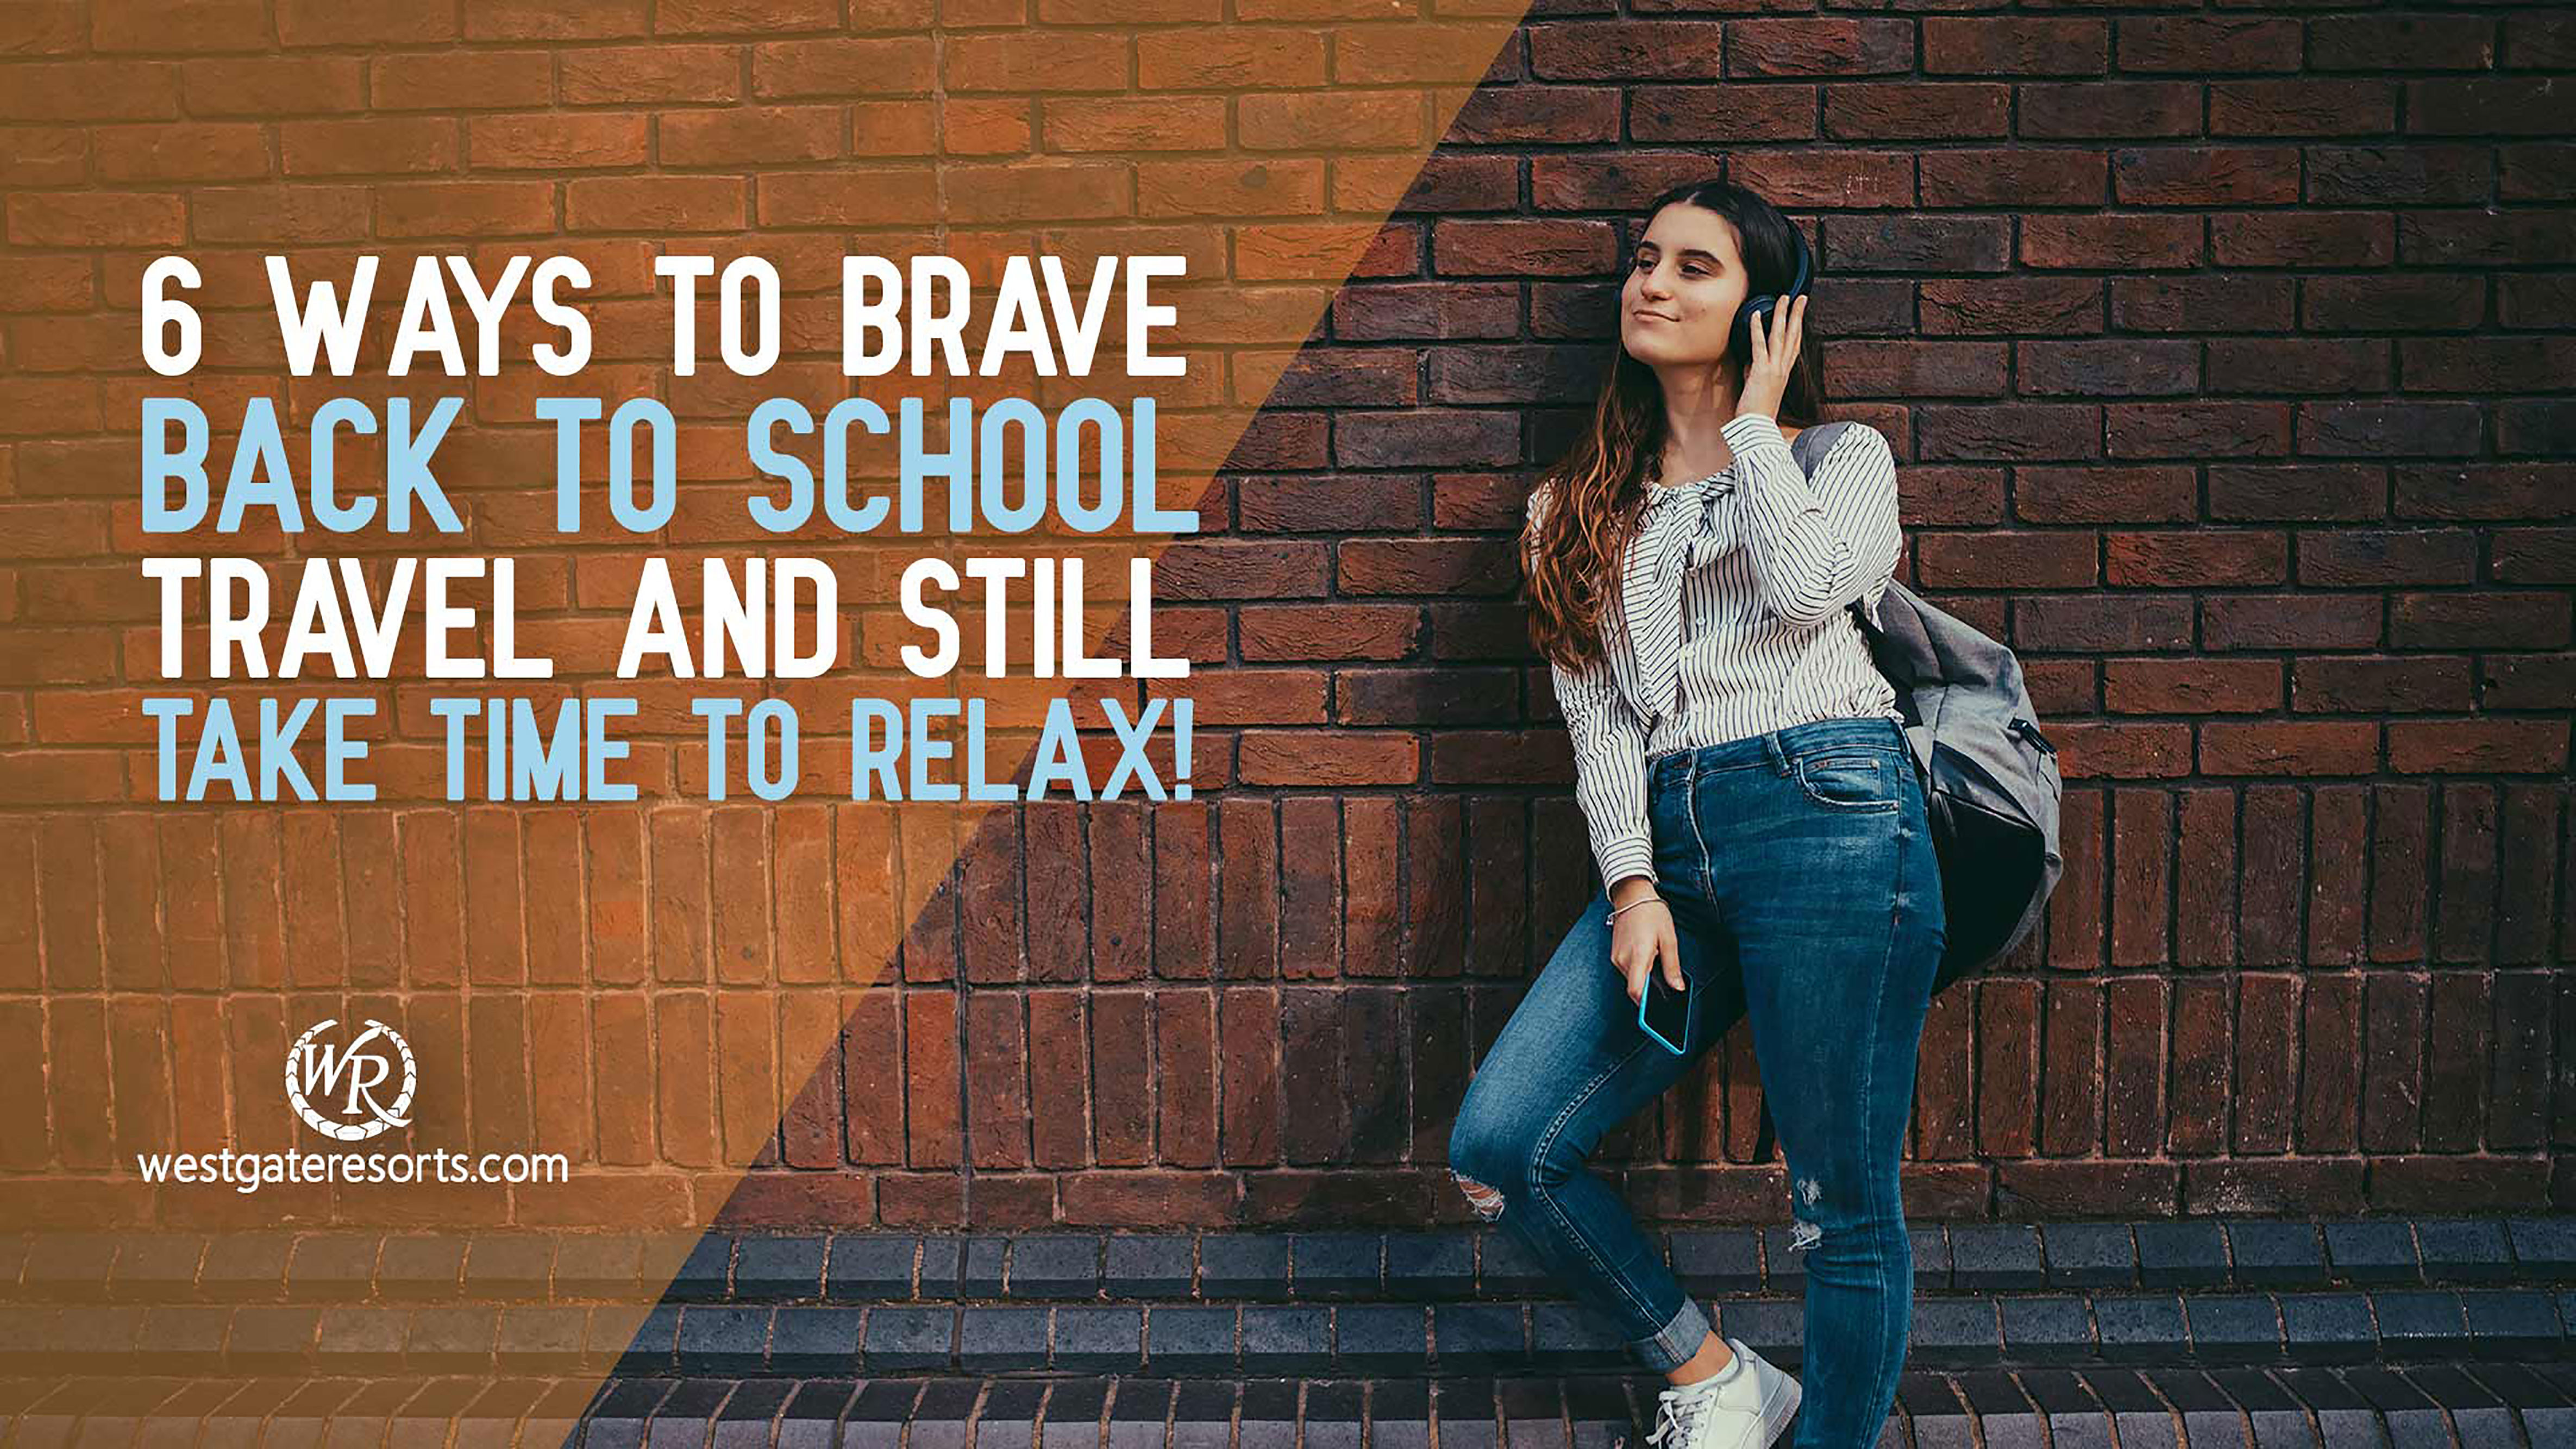 6 Ways To Brave Back to School Travel and Still Take Time To Relax!